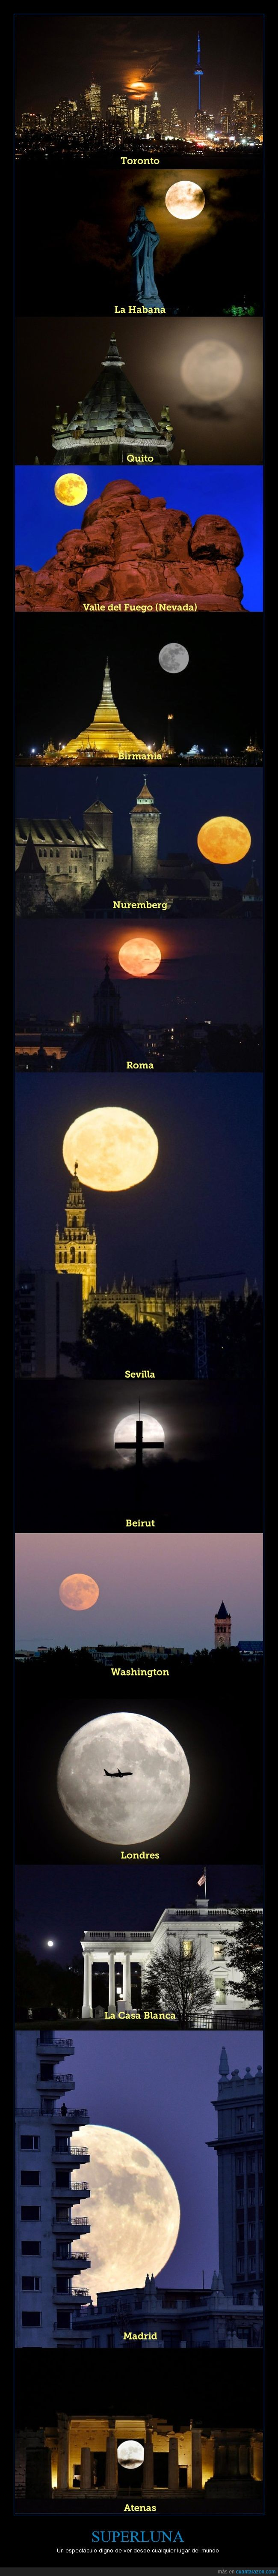 fotos,luna,mundo,superluna